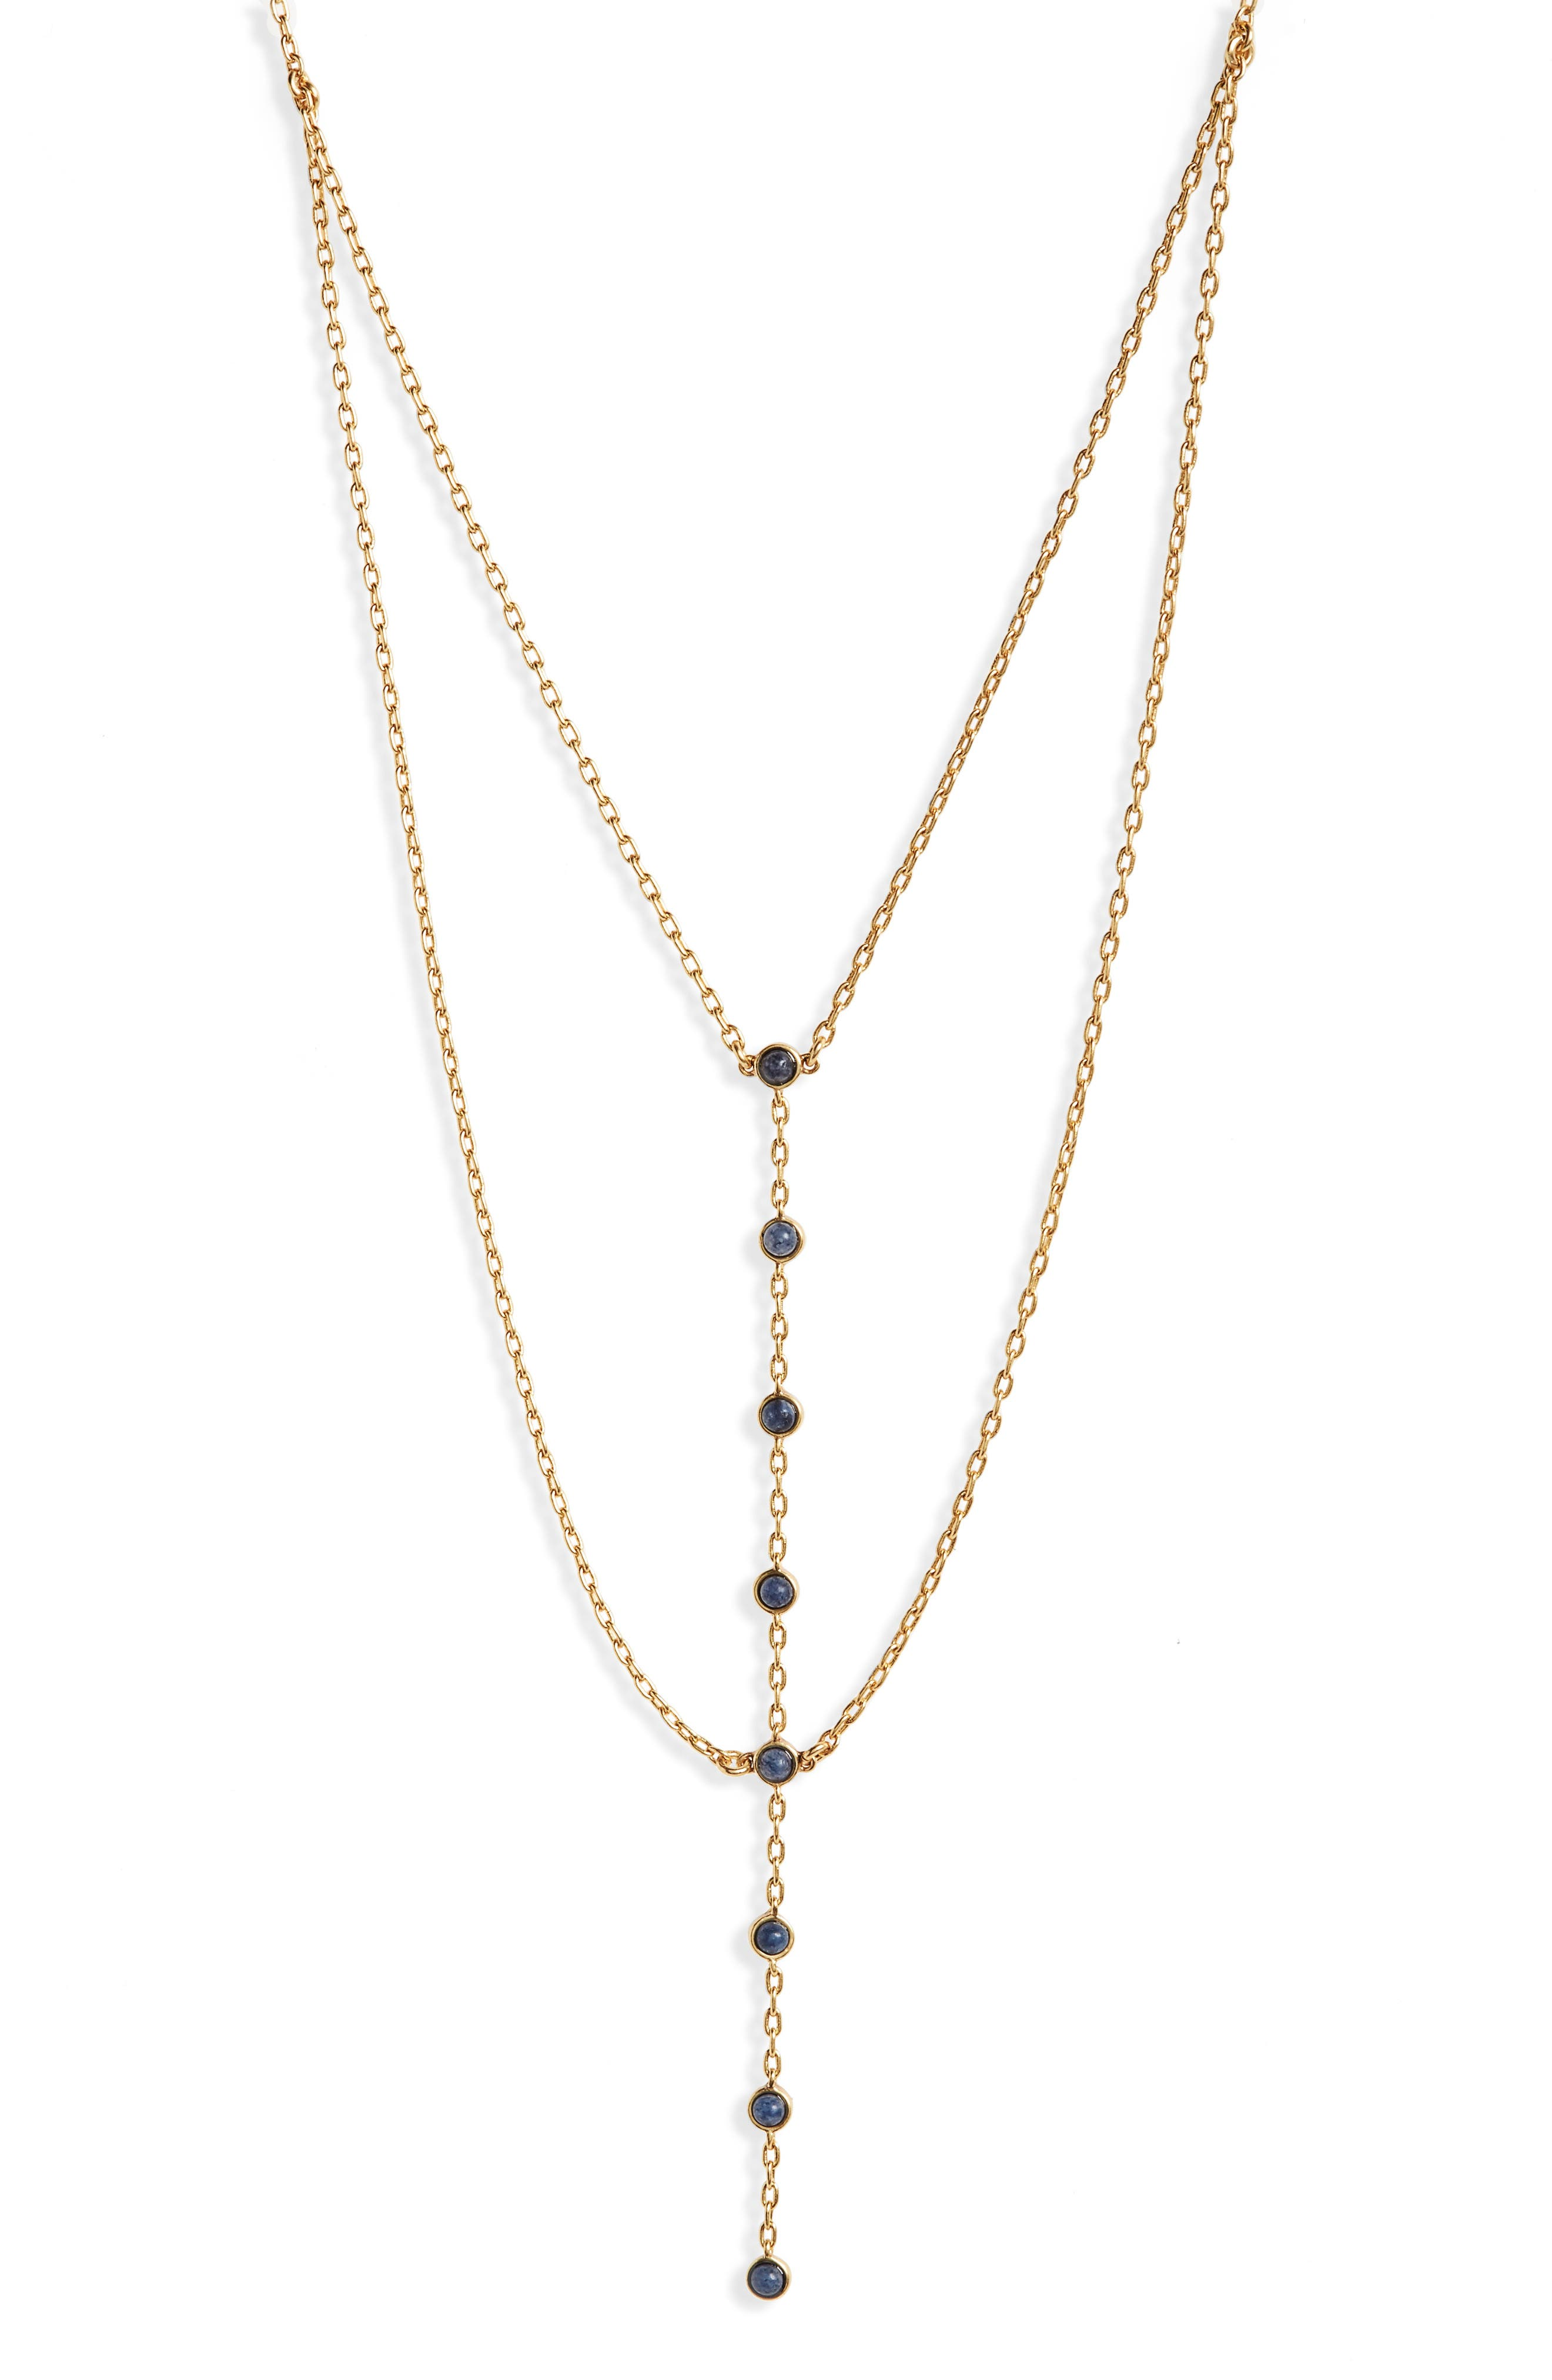 Main Image - Madewell Nuit Layered Lariat Necklace